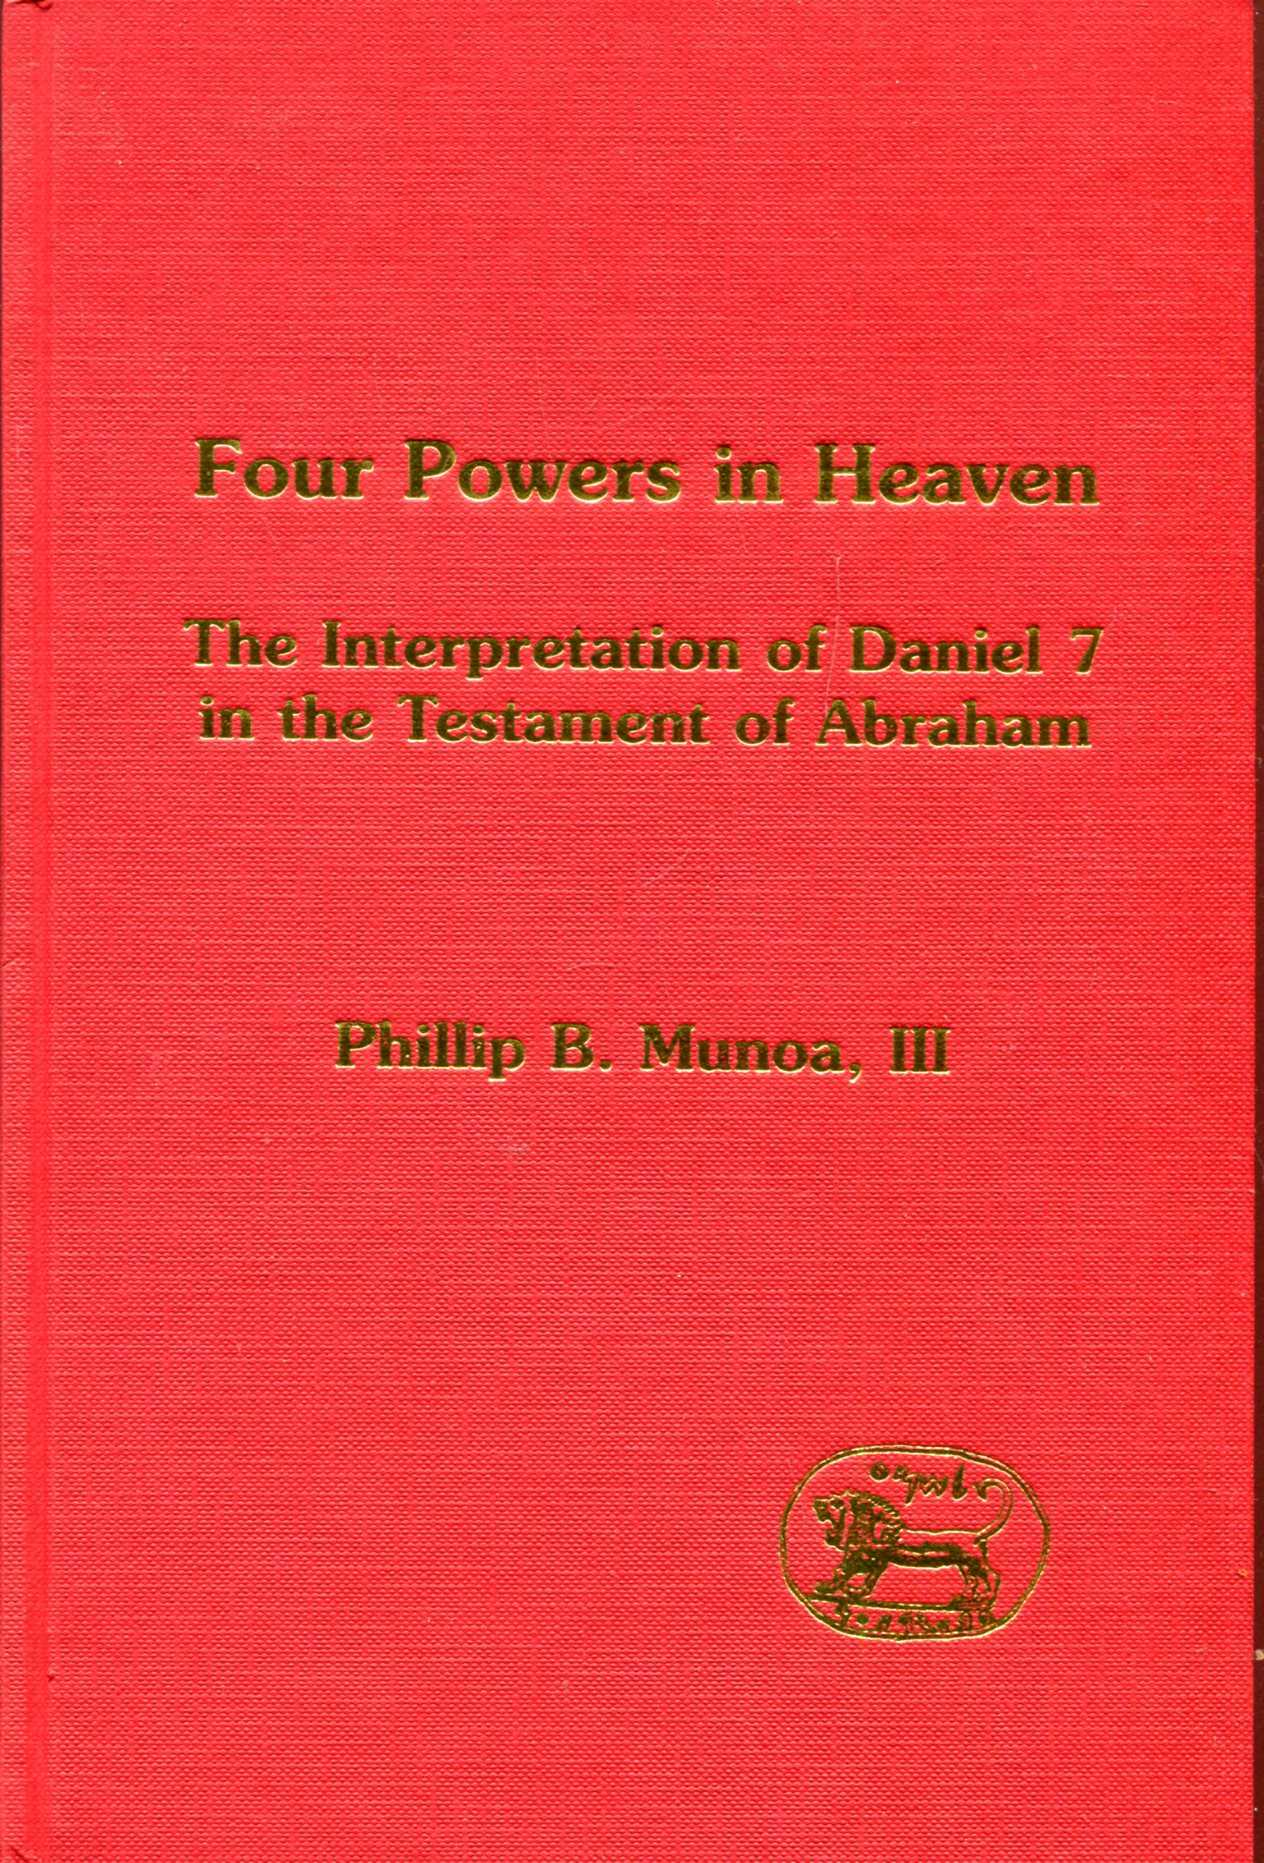 Image for Four Powers in Heaven, the interpretation of Daniel 7 in the Testament of Abraham